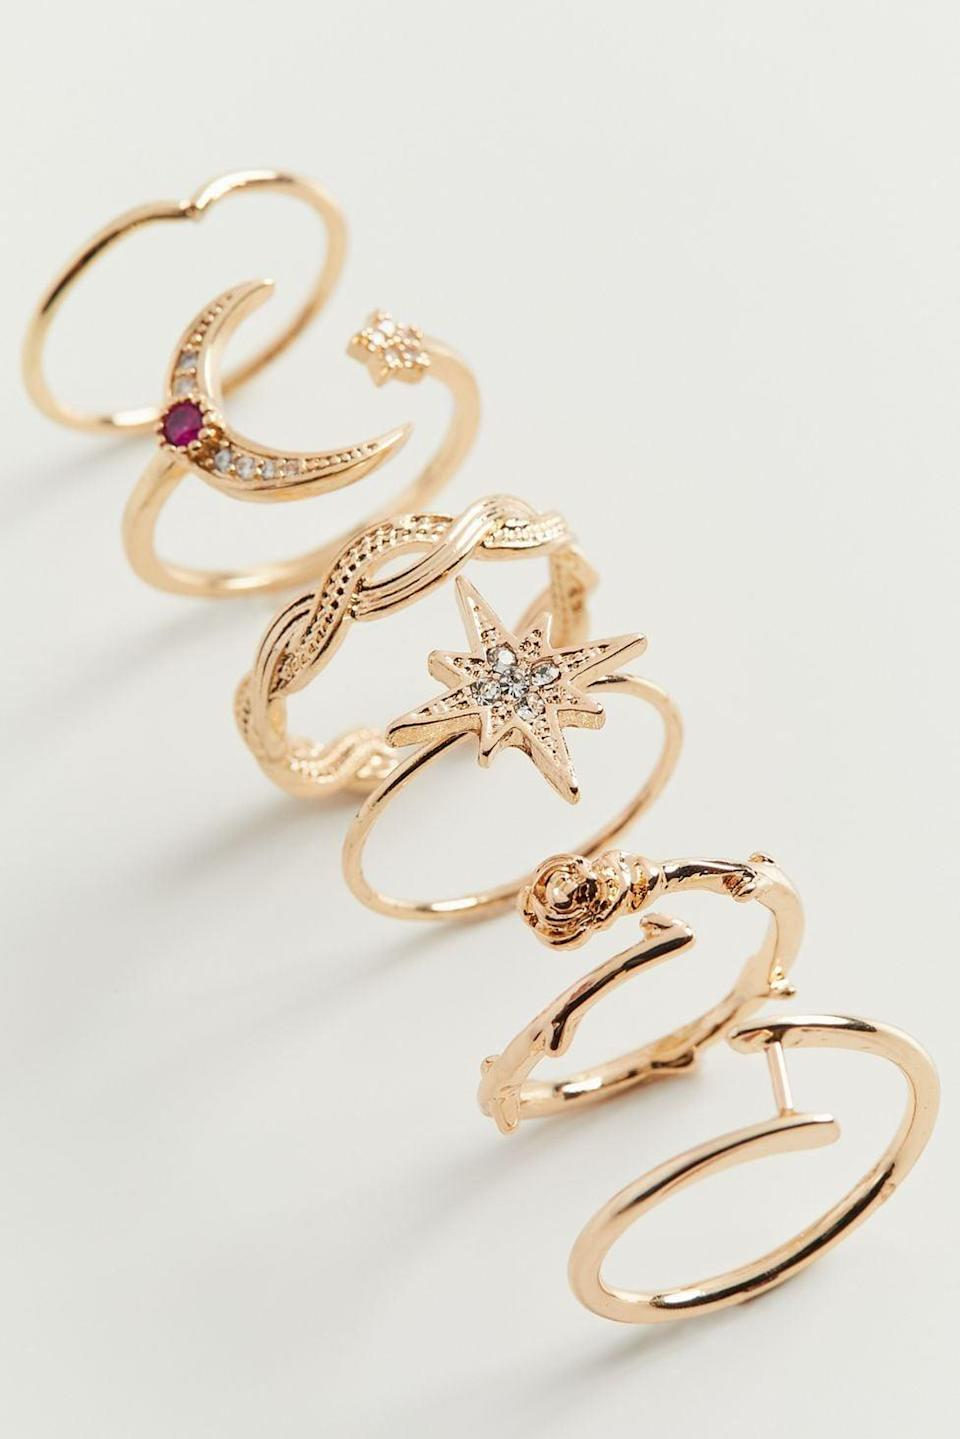 <p>If they love to accessorize with rings ontop of rings, the <span>Sienna Celestial Ring Set</span> ($20) is such a gorgeous find. It comes with six stackable rings inspried by the celestial aesthetic. It also comes in silver. </p>